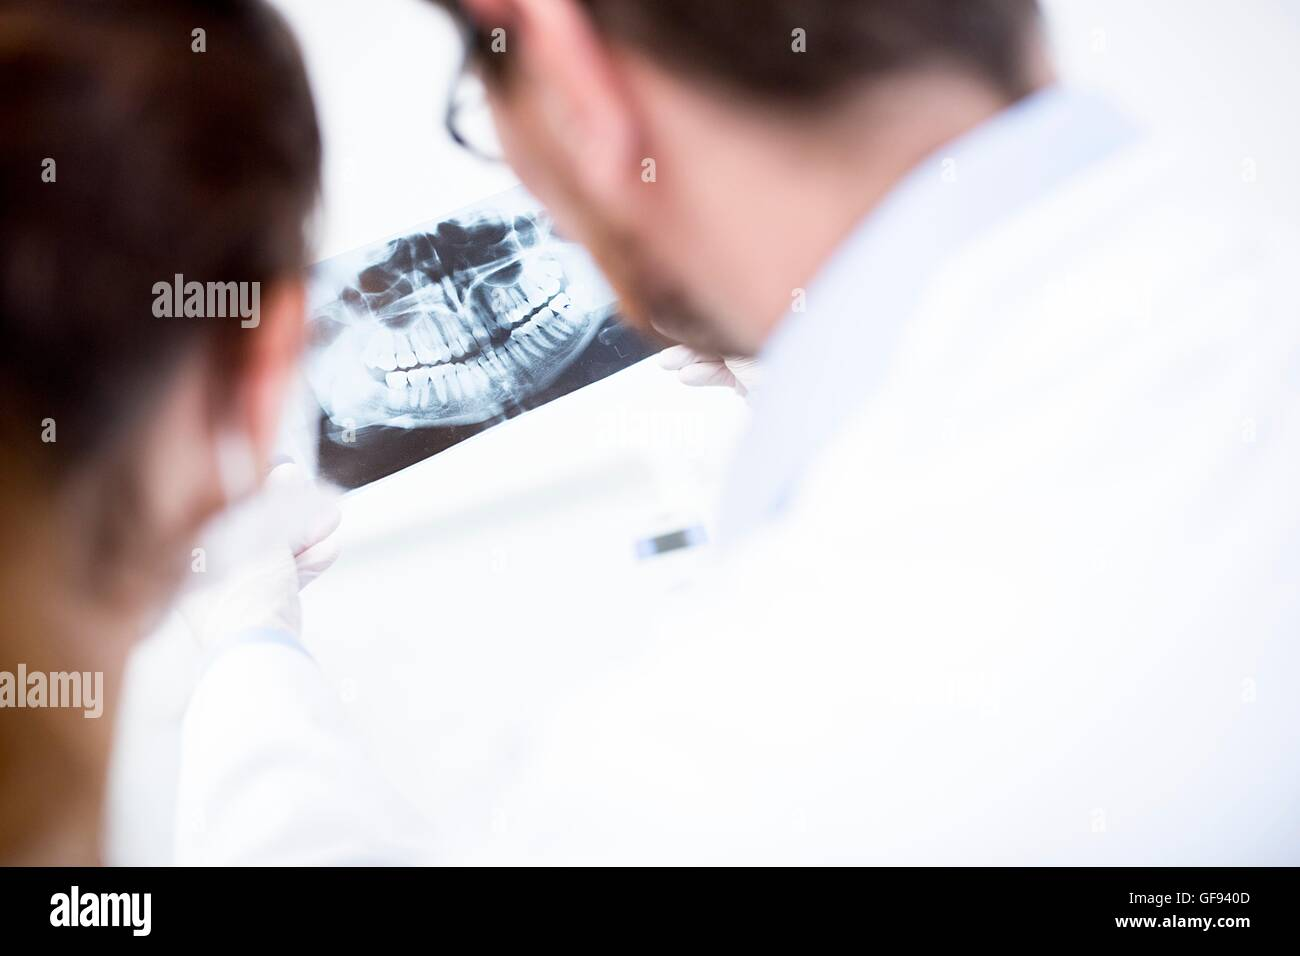 MODEL RELEASED. Dentist and dental assistant looking at x-ray image. - Stock Image